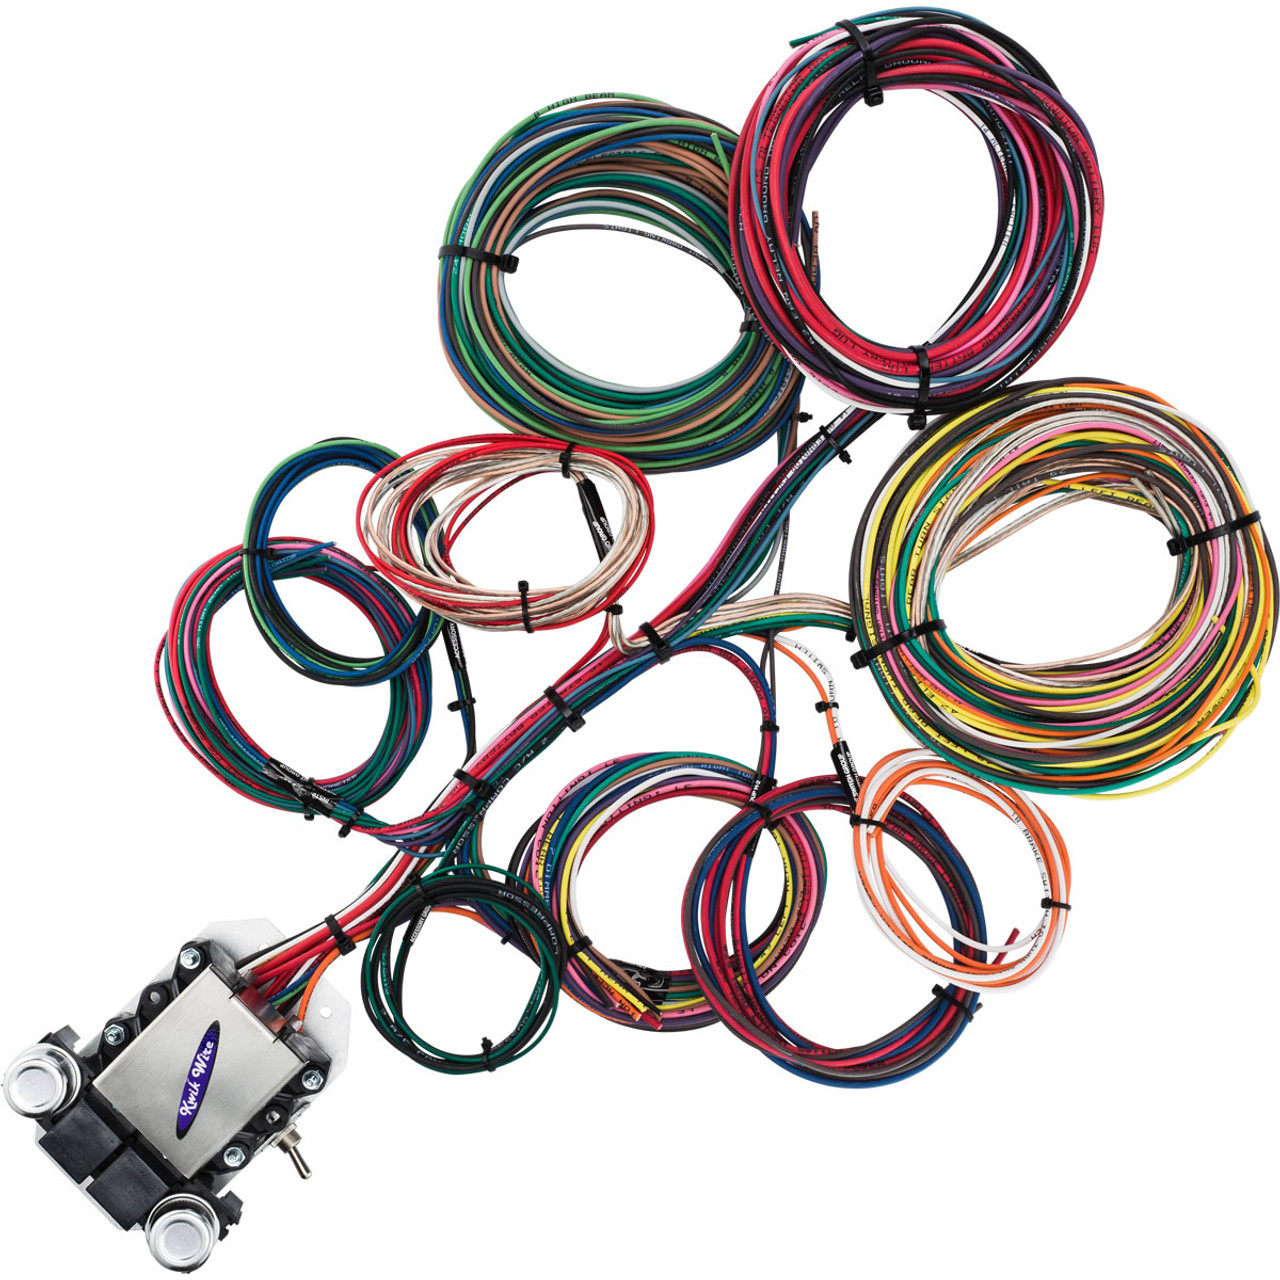 14 Circuit Wire Harness Electrify Your Ride Mopar Hei Wiring In Gm